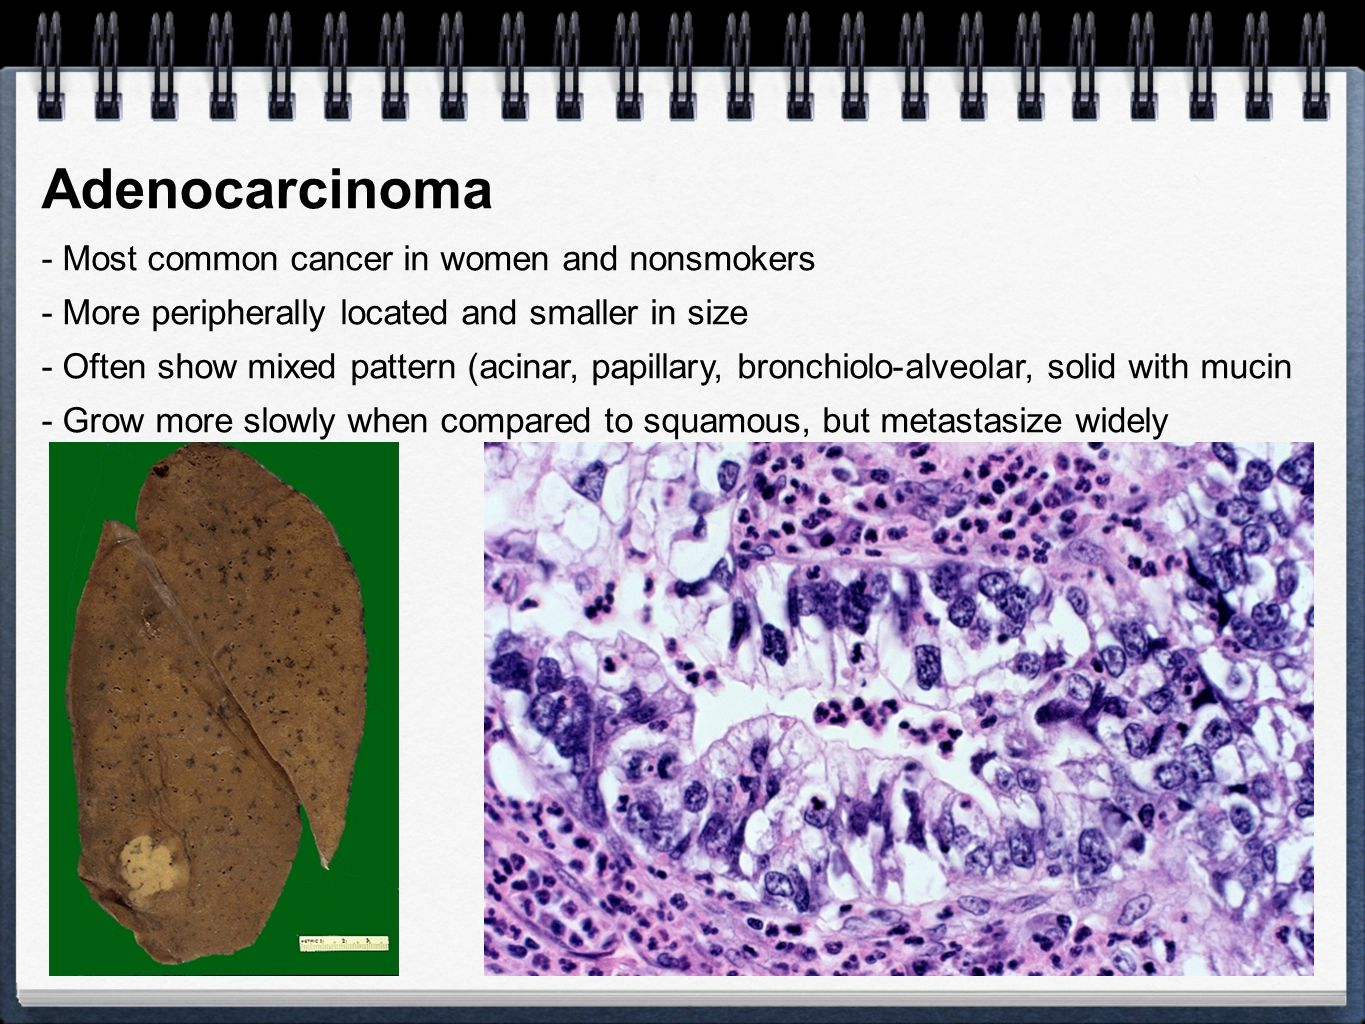 Adenocarcinoma - Most common cancer in women and nonsmokers